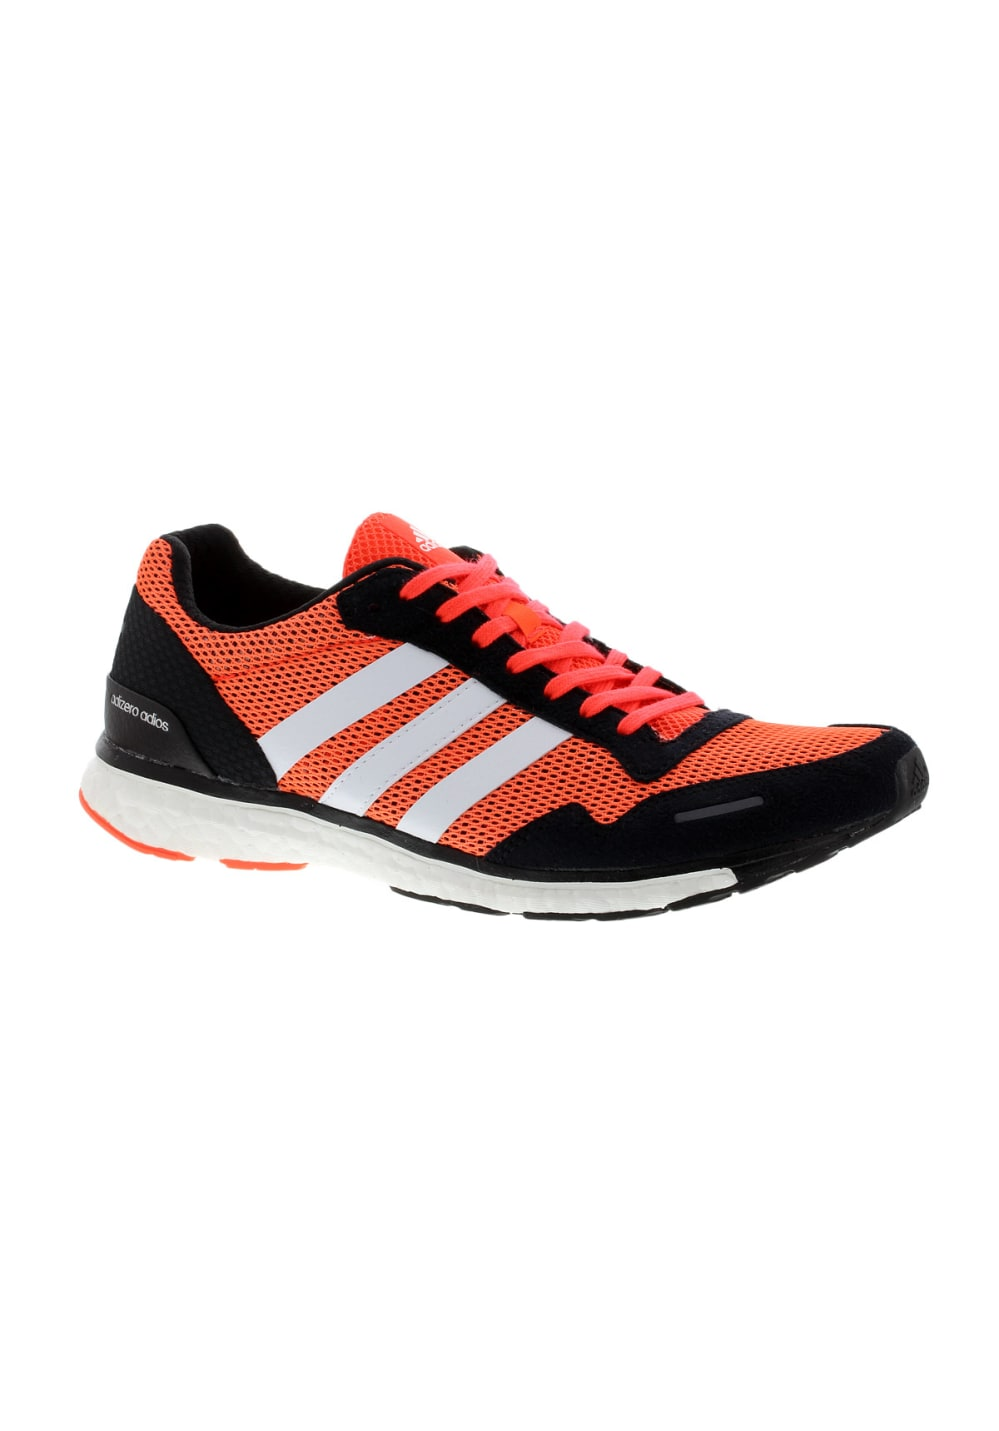 buy popular 19e91 f6316 adidas adizero adios boost 5